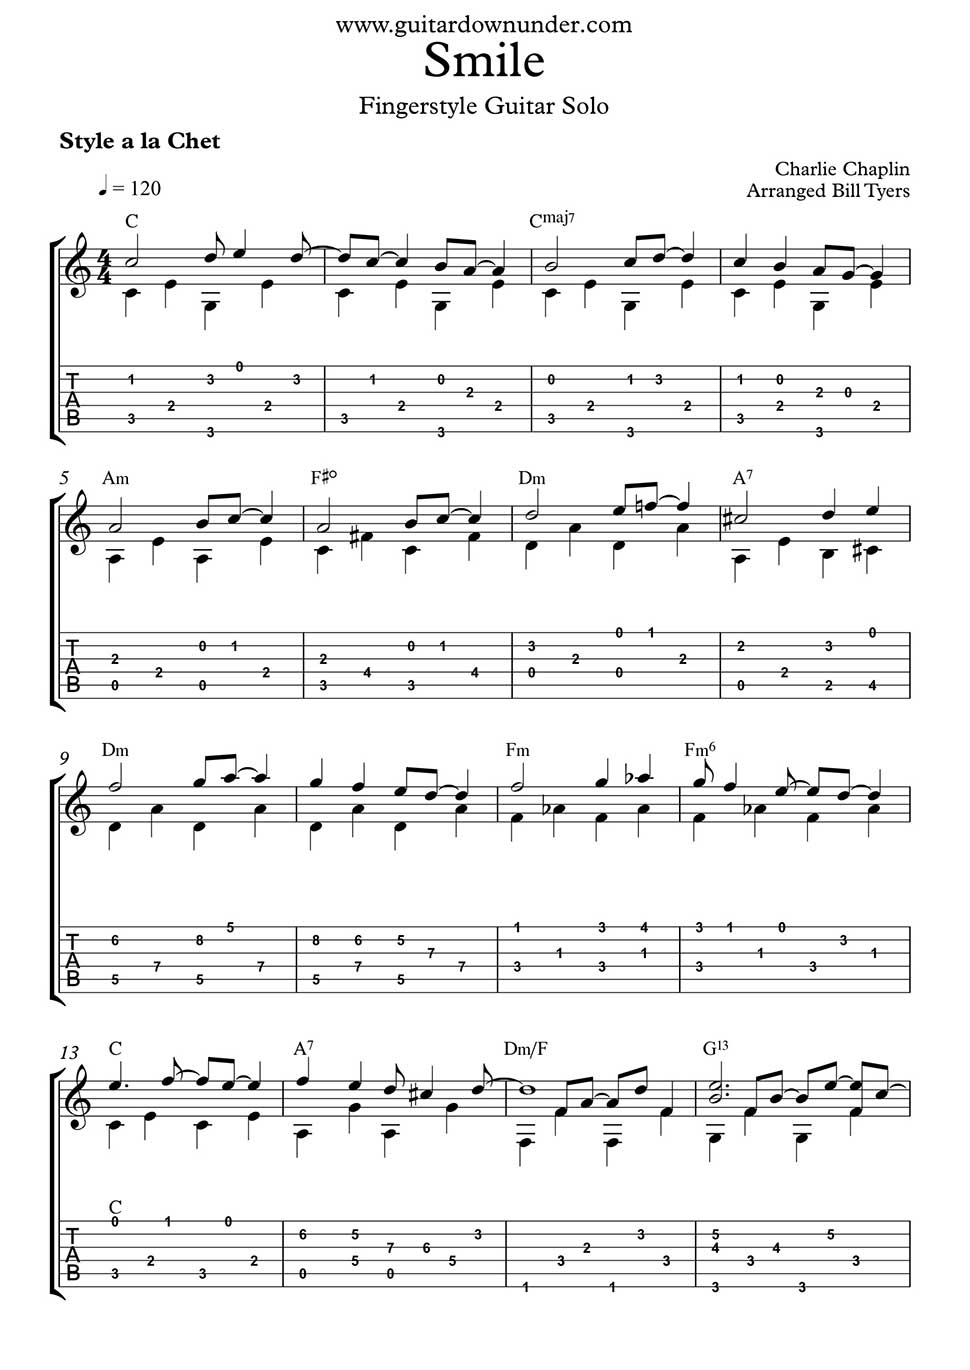 Smile By Charlie Chaplin For Fingerstyle Guitar Solo